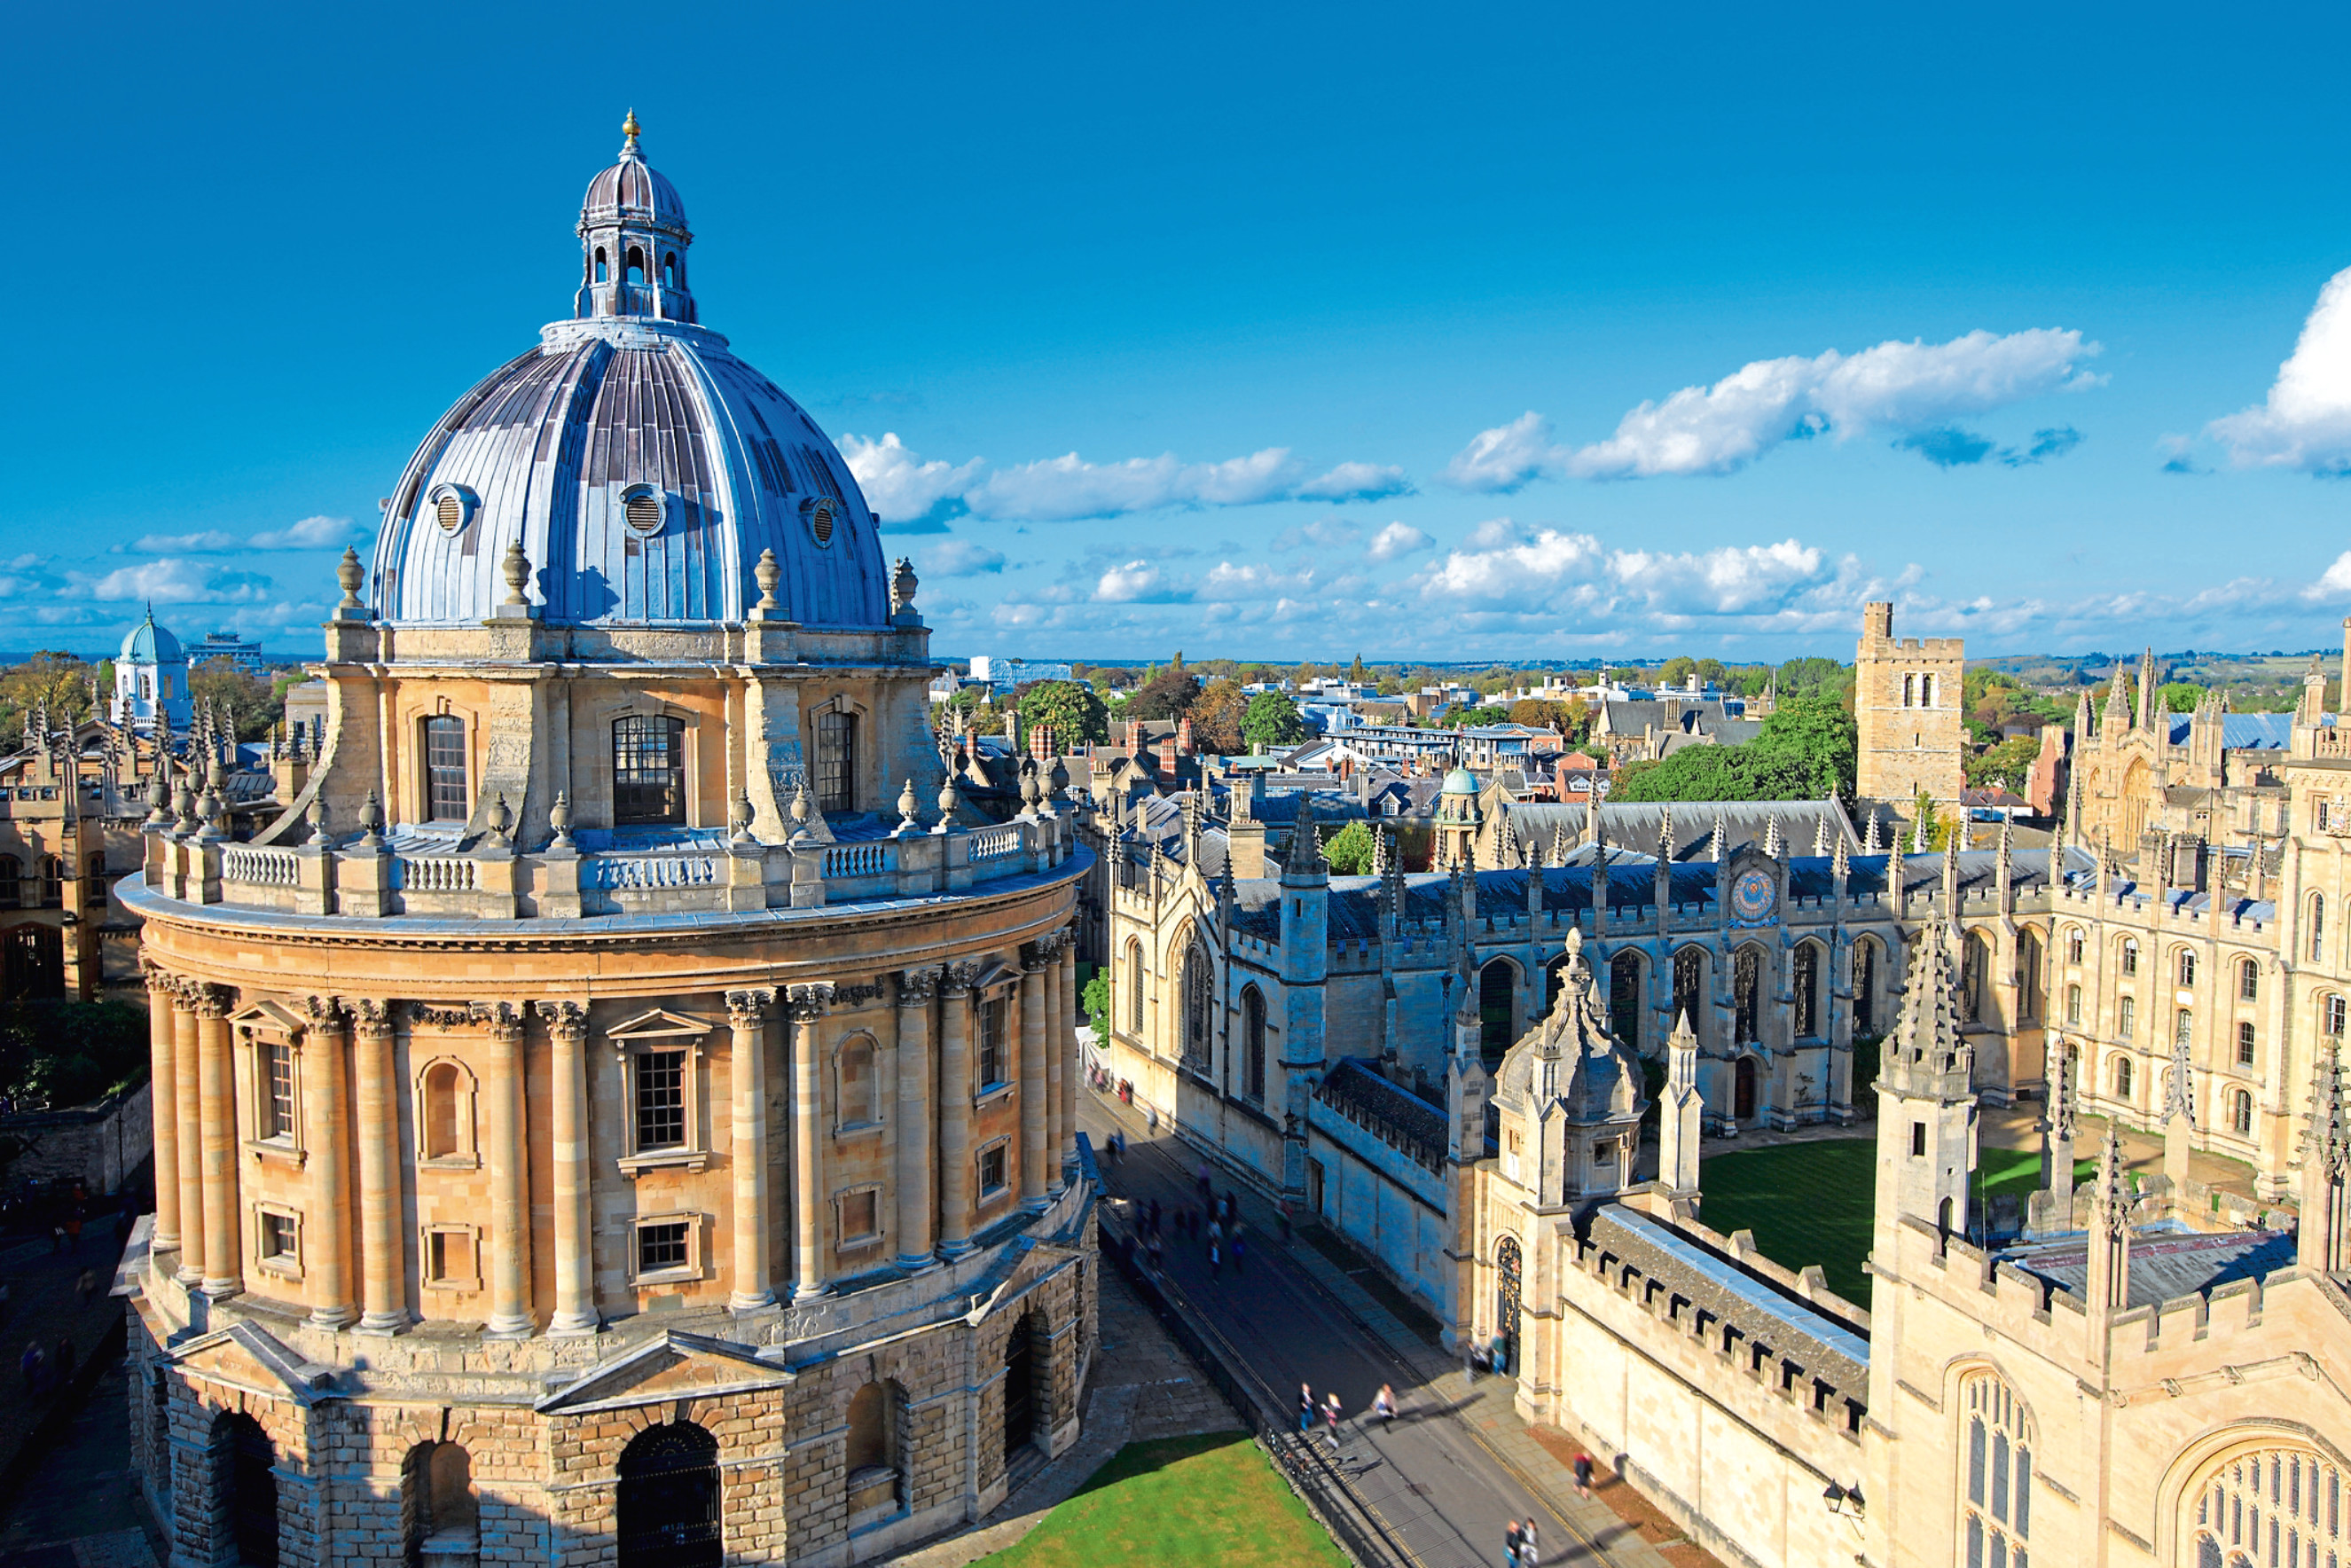 The Oxford University City. St Marys Church, All Souls College, England.